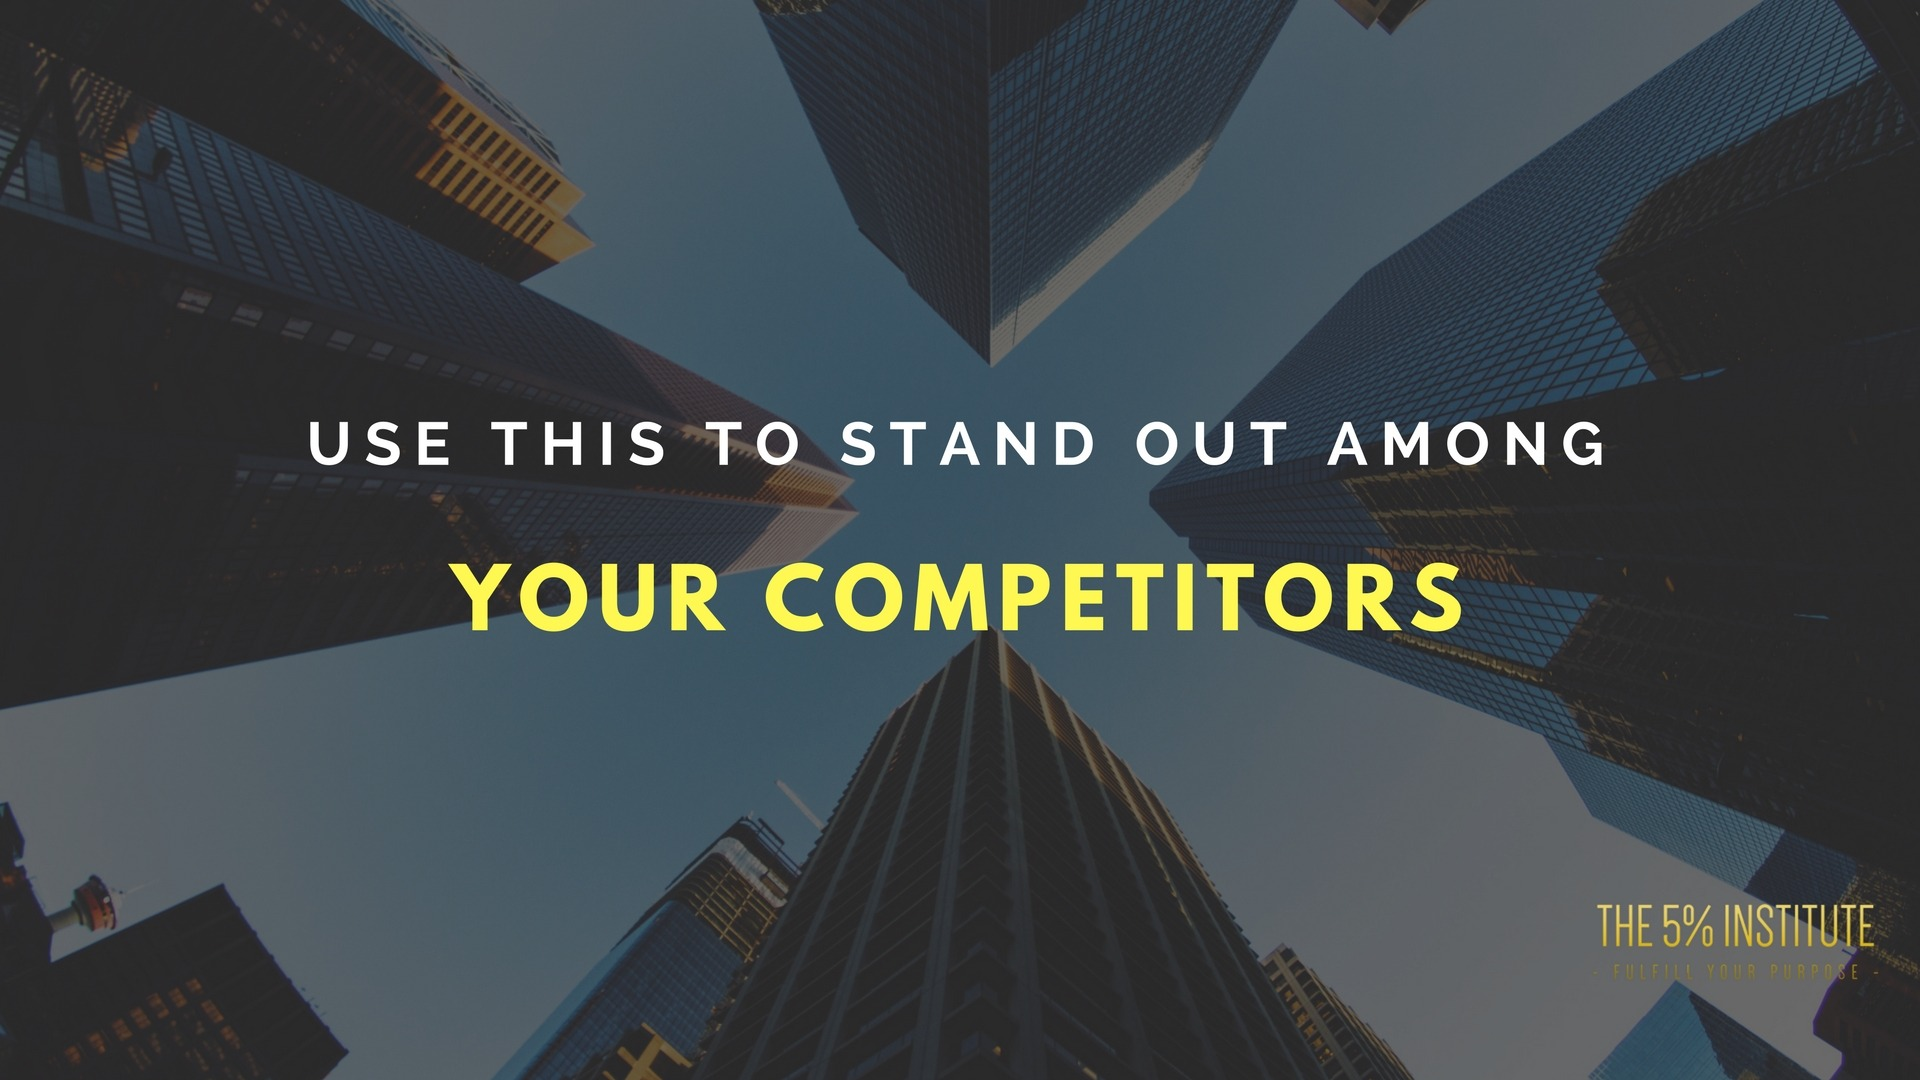 stand out among competitors